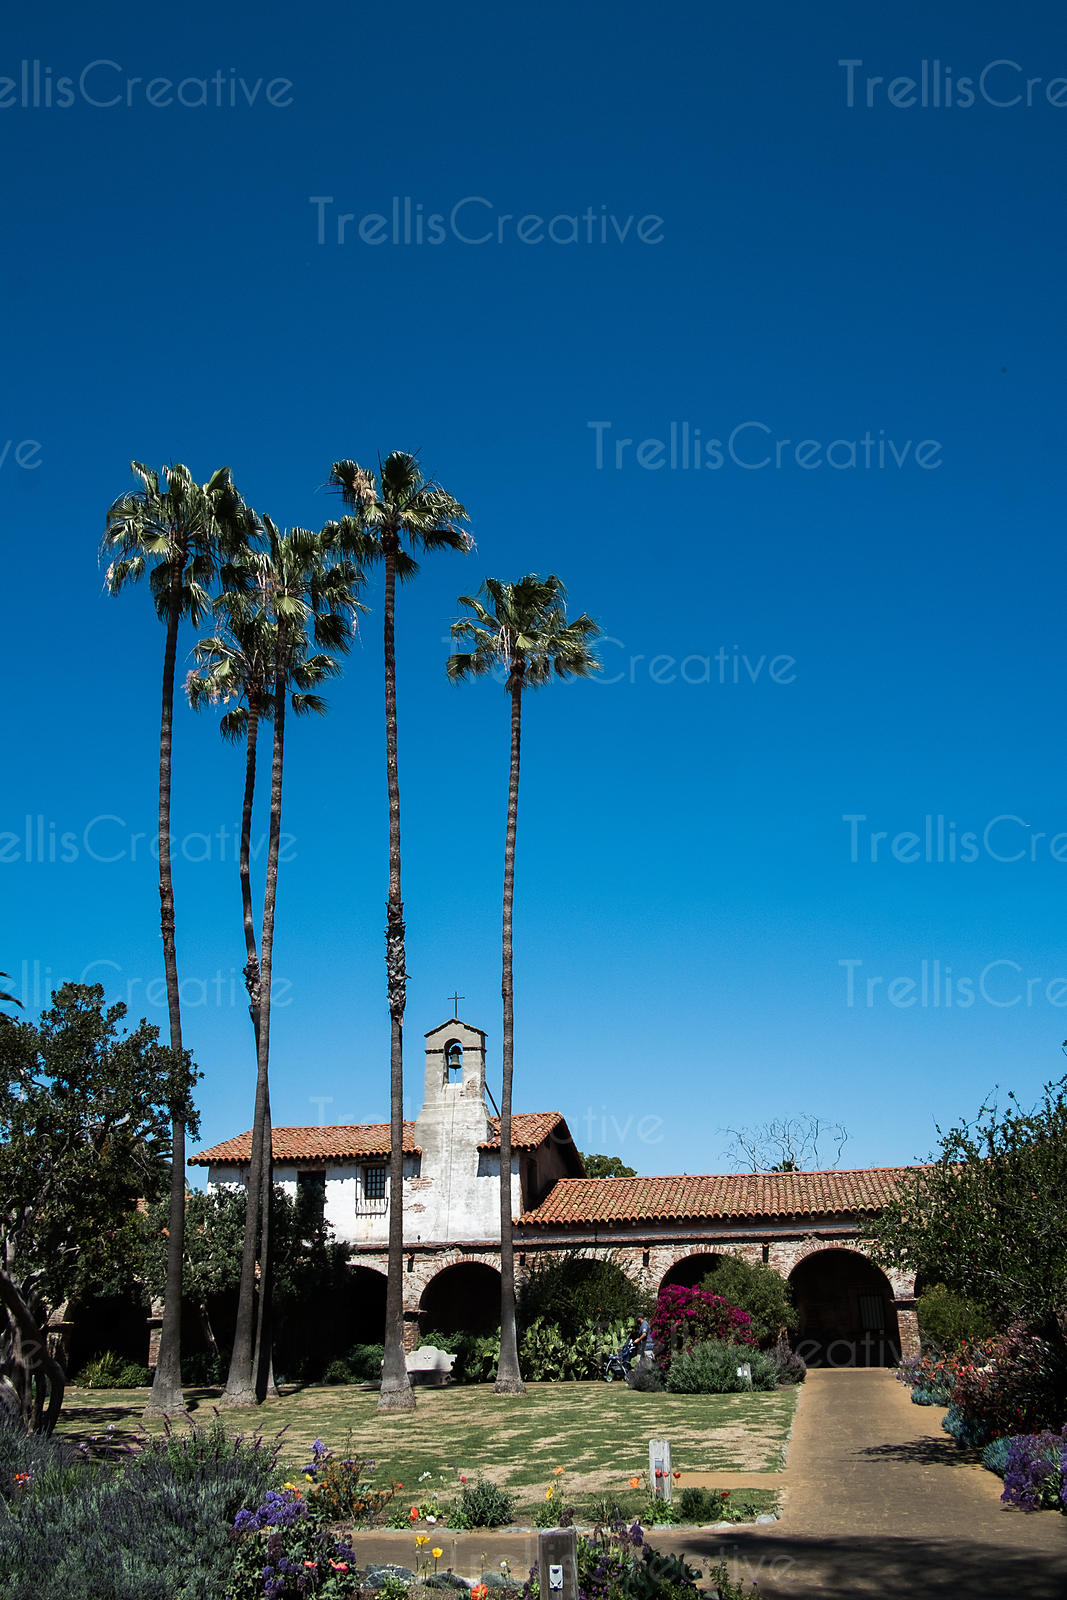 Spanish style Mission church building under blue sky with palm trees in its garden